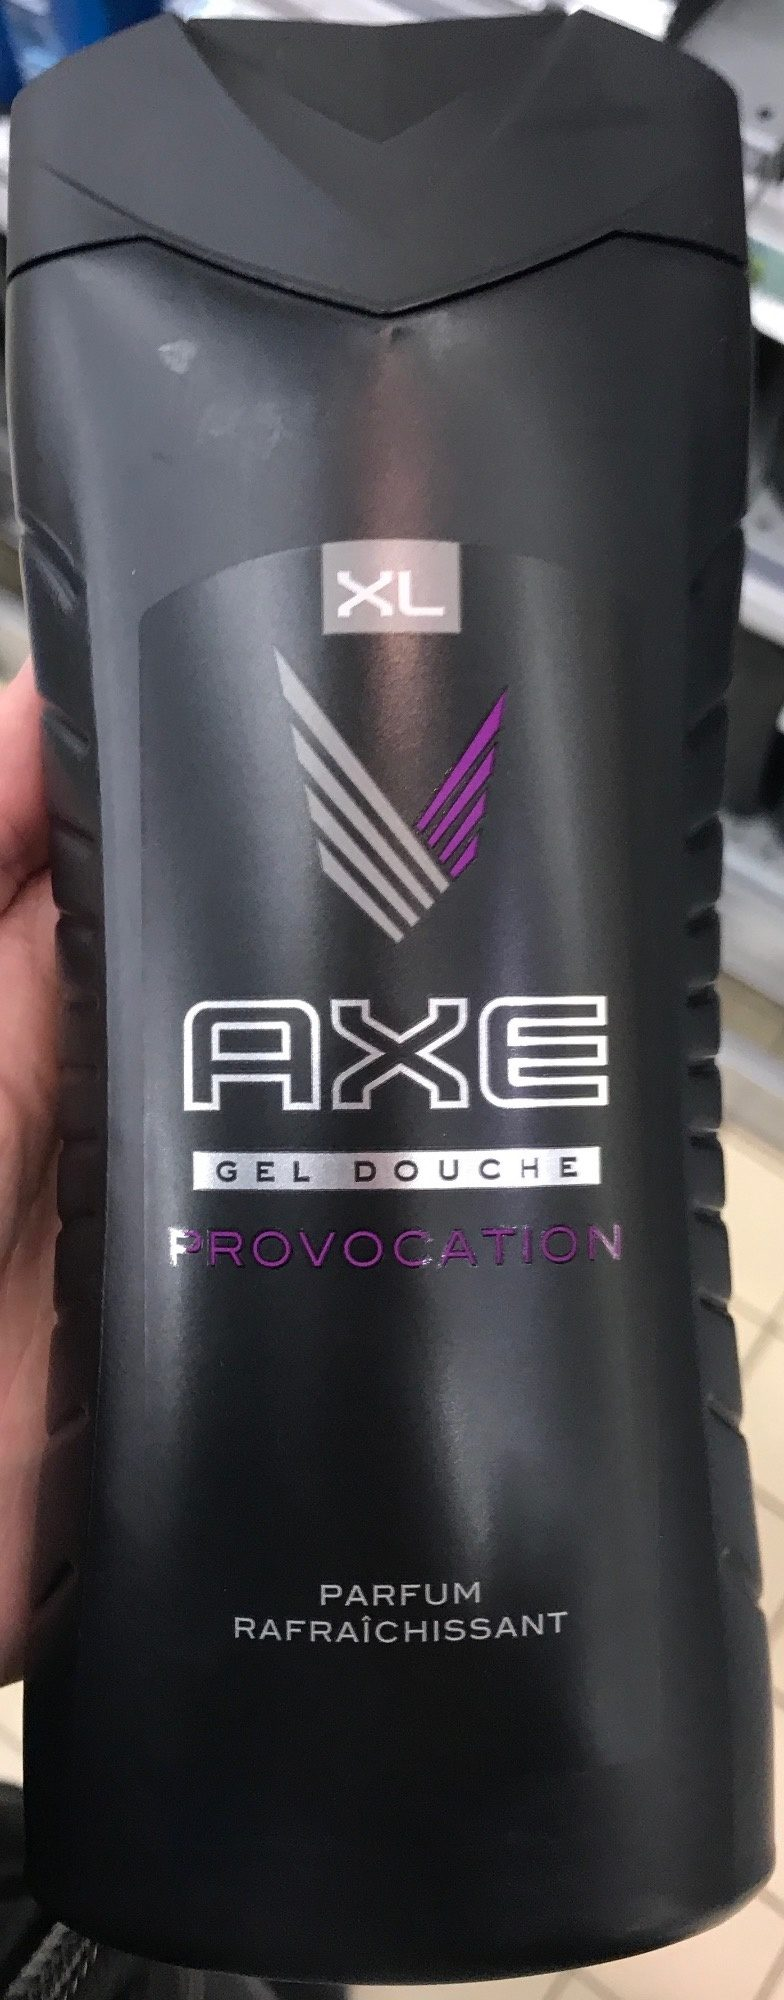 AXE Gel Douche Homme Provocation - Product - fr